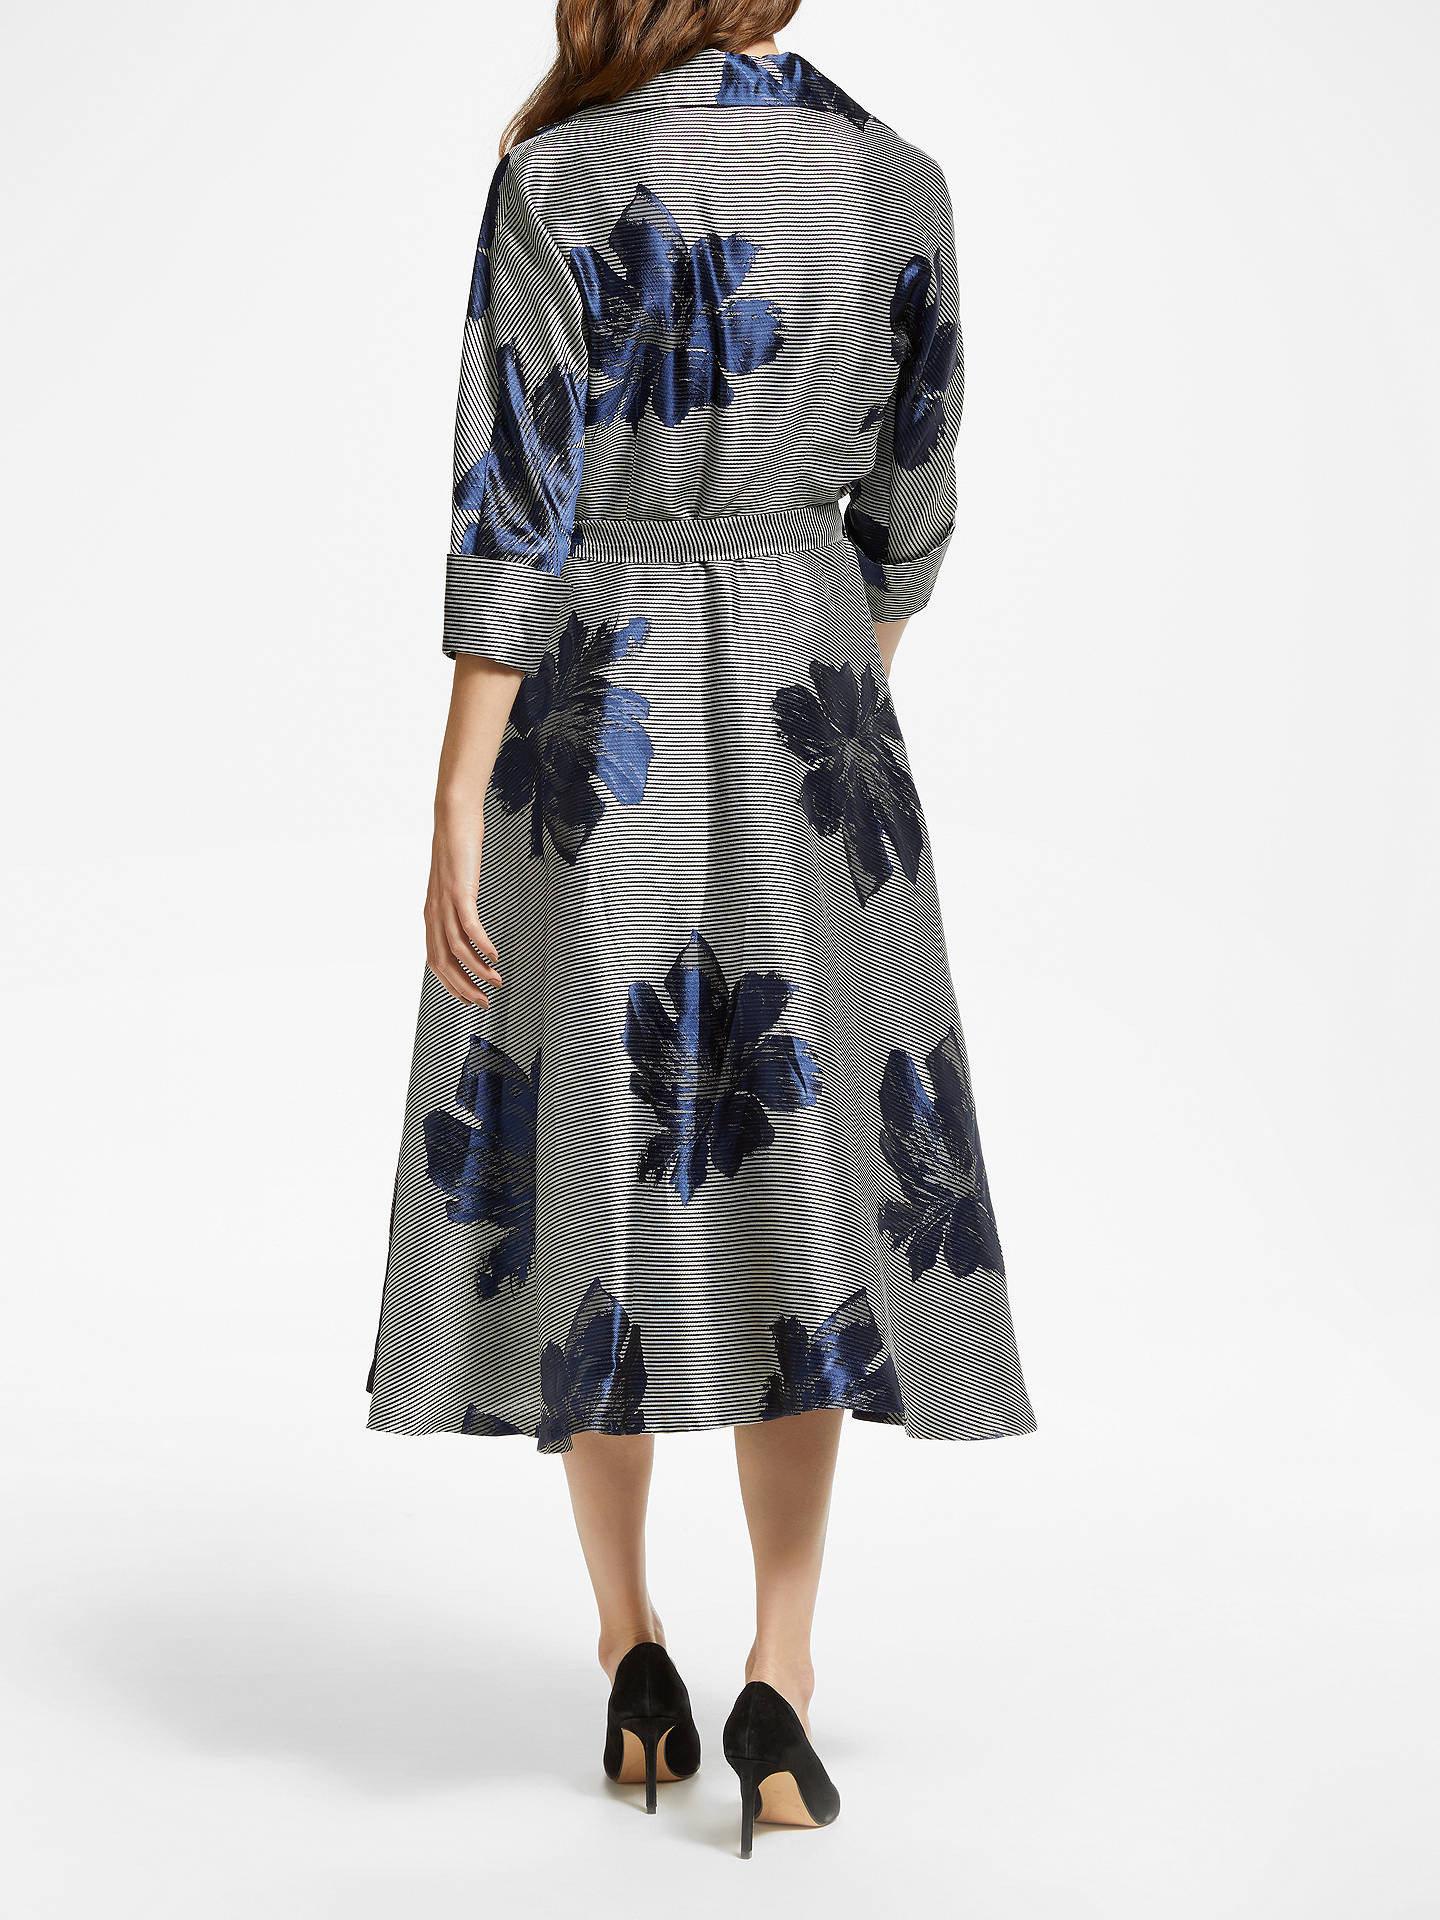 BuyBruce by Bruce Oldfield Jacquard Stripe Floral Shirt Dress, Multi, 14 Online at johnlewis.com